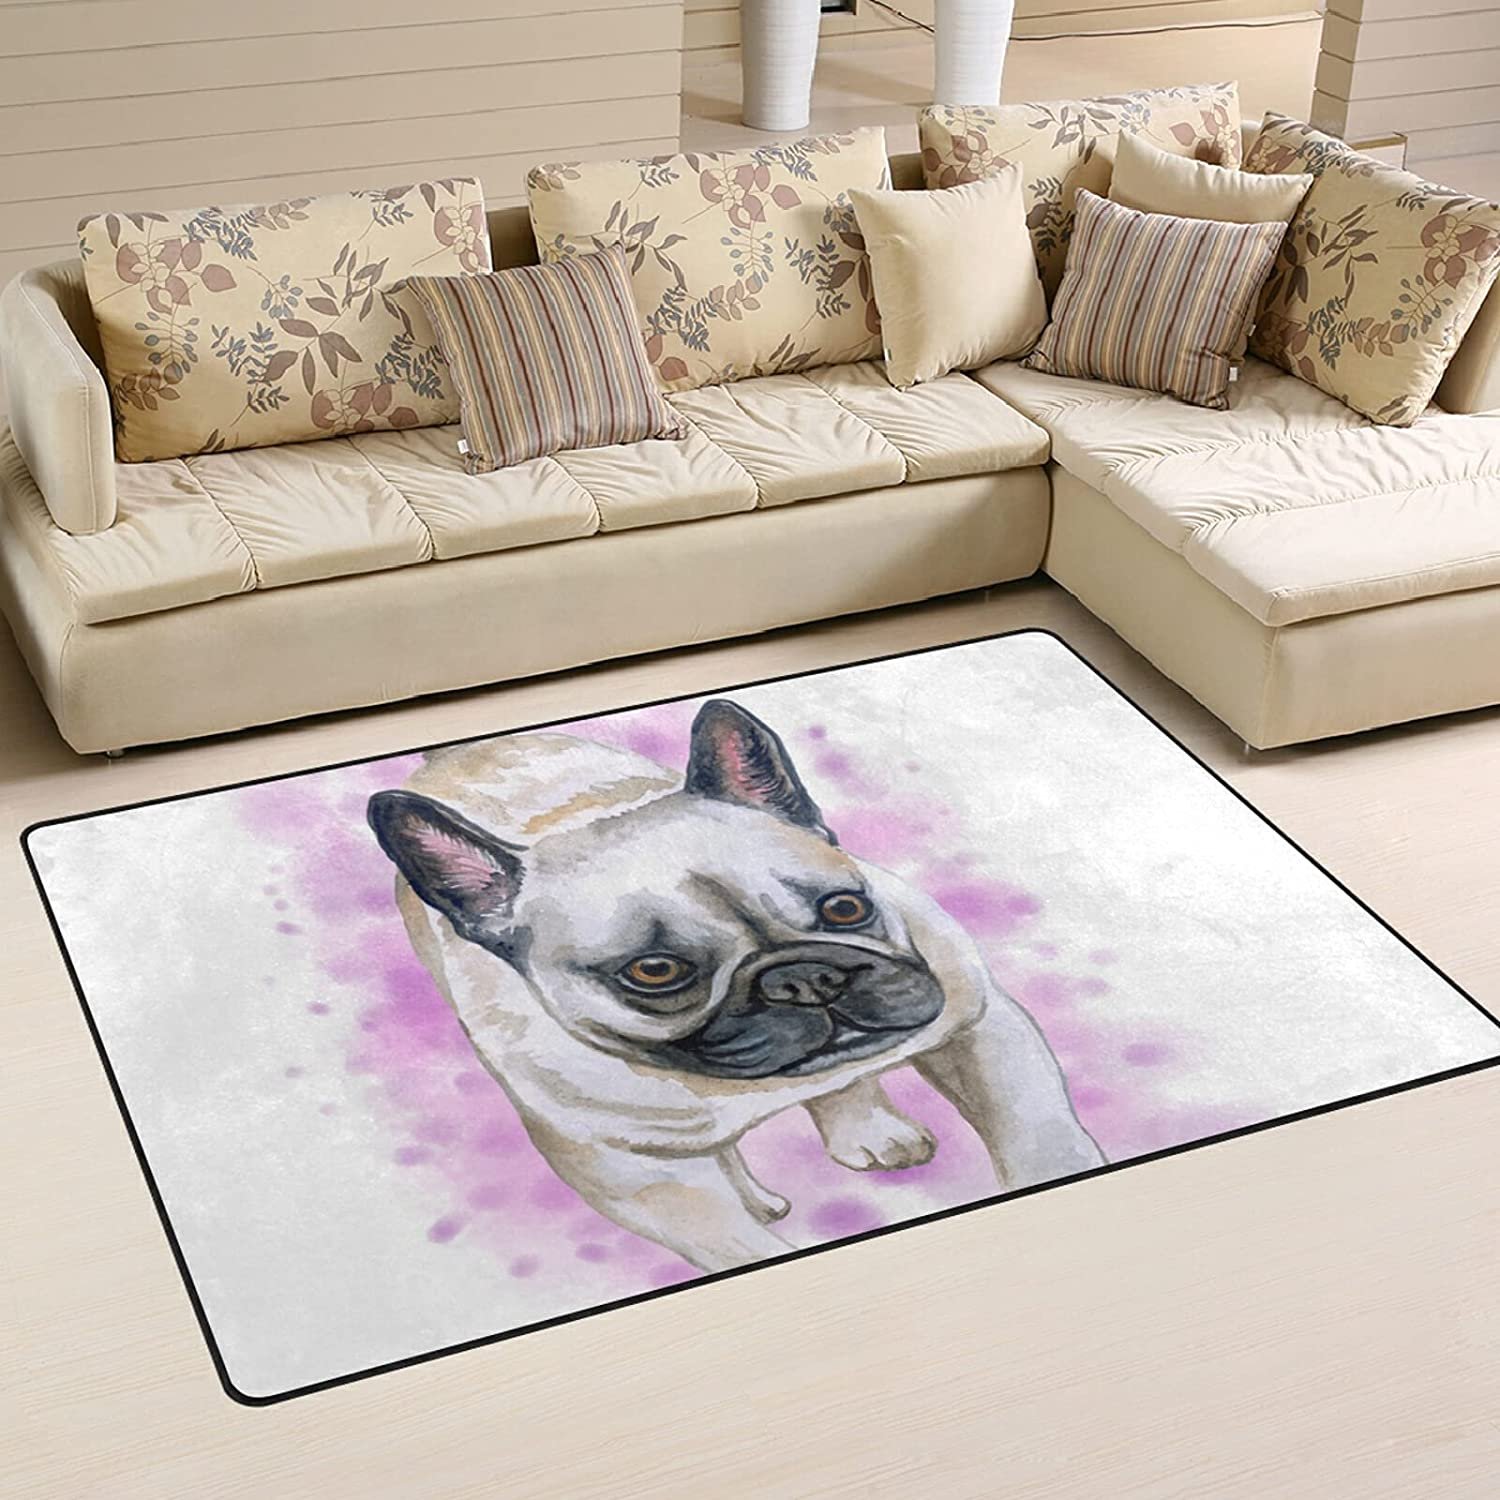 Watercolor French Bulldog Luxury Large Soft Playmat Rugs Nursery Area OFFicial mail order R